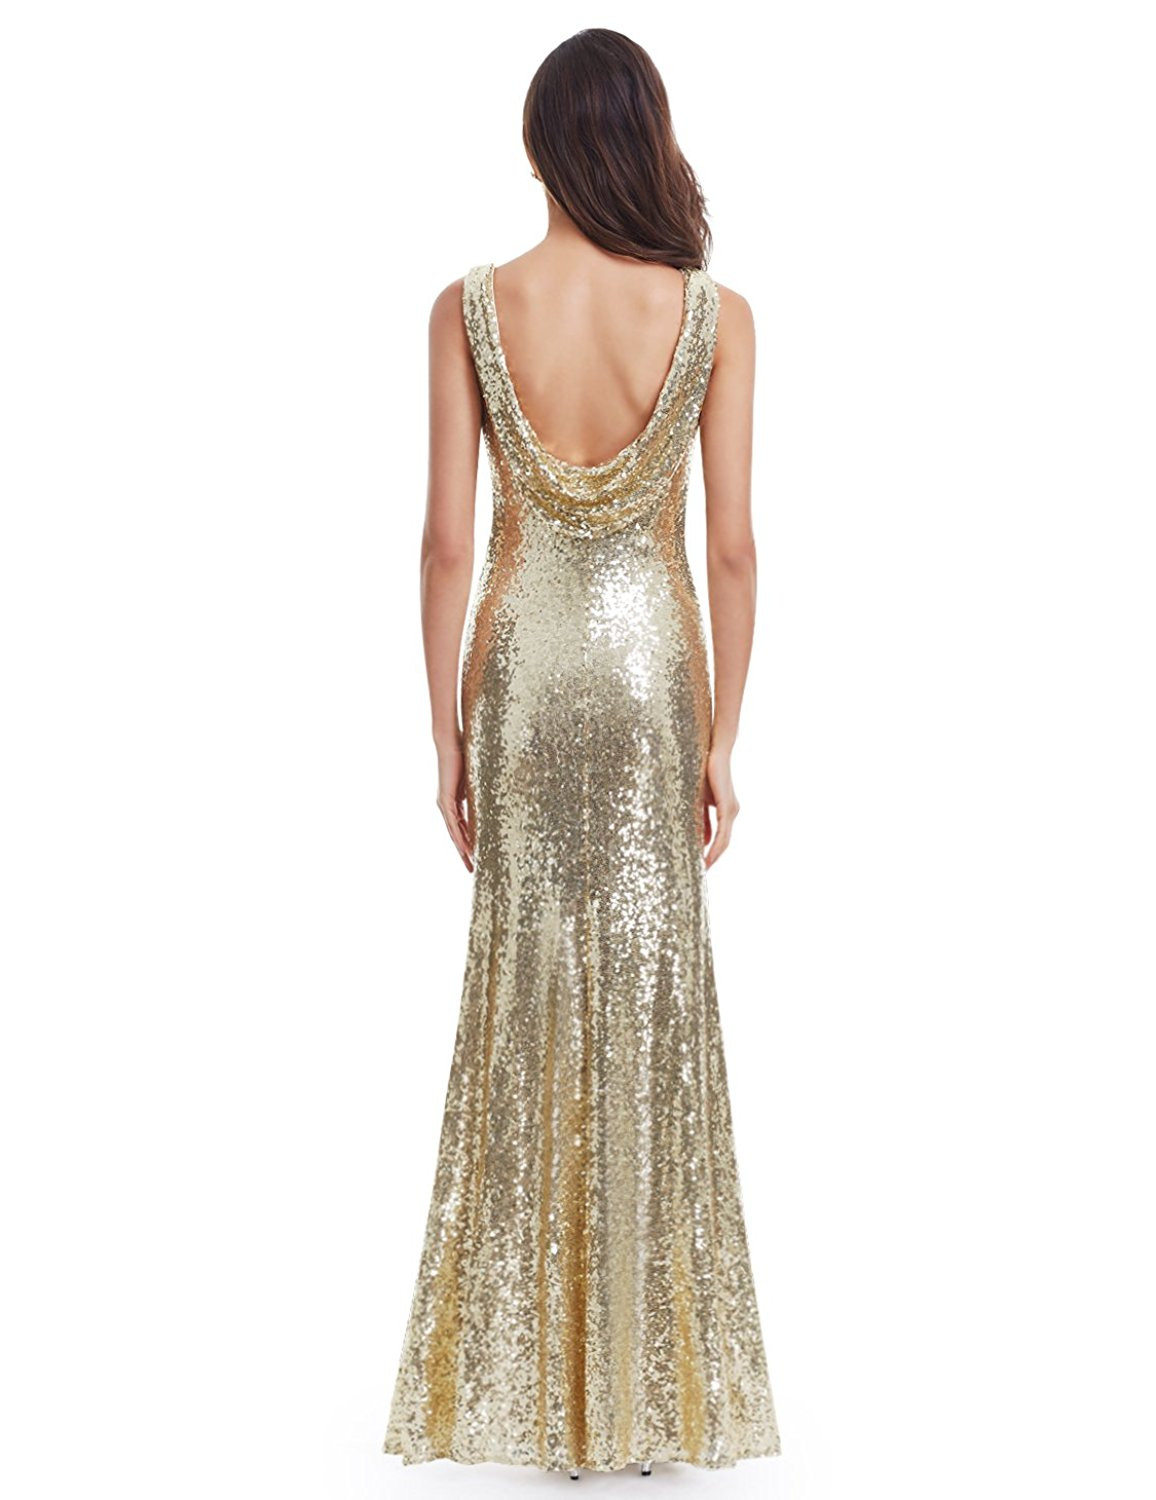 143bdf3185 Amazon.com  Ever Pretty Back Cowl Neck Shine Sequin Sparkle Elegant Gold  Evening Party Gown 07110  Clothing